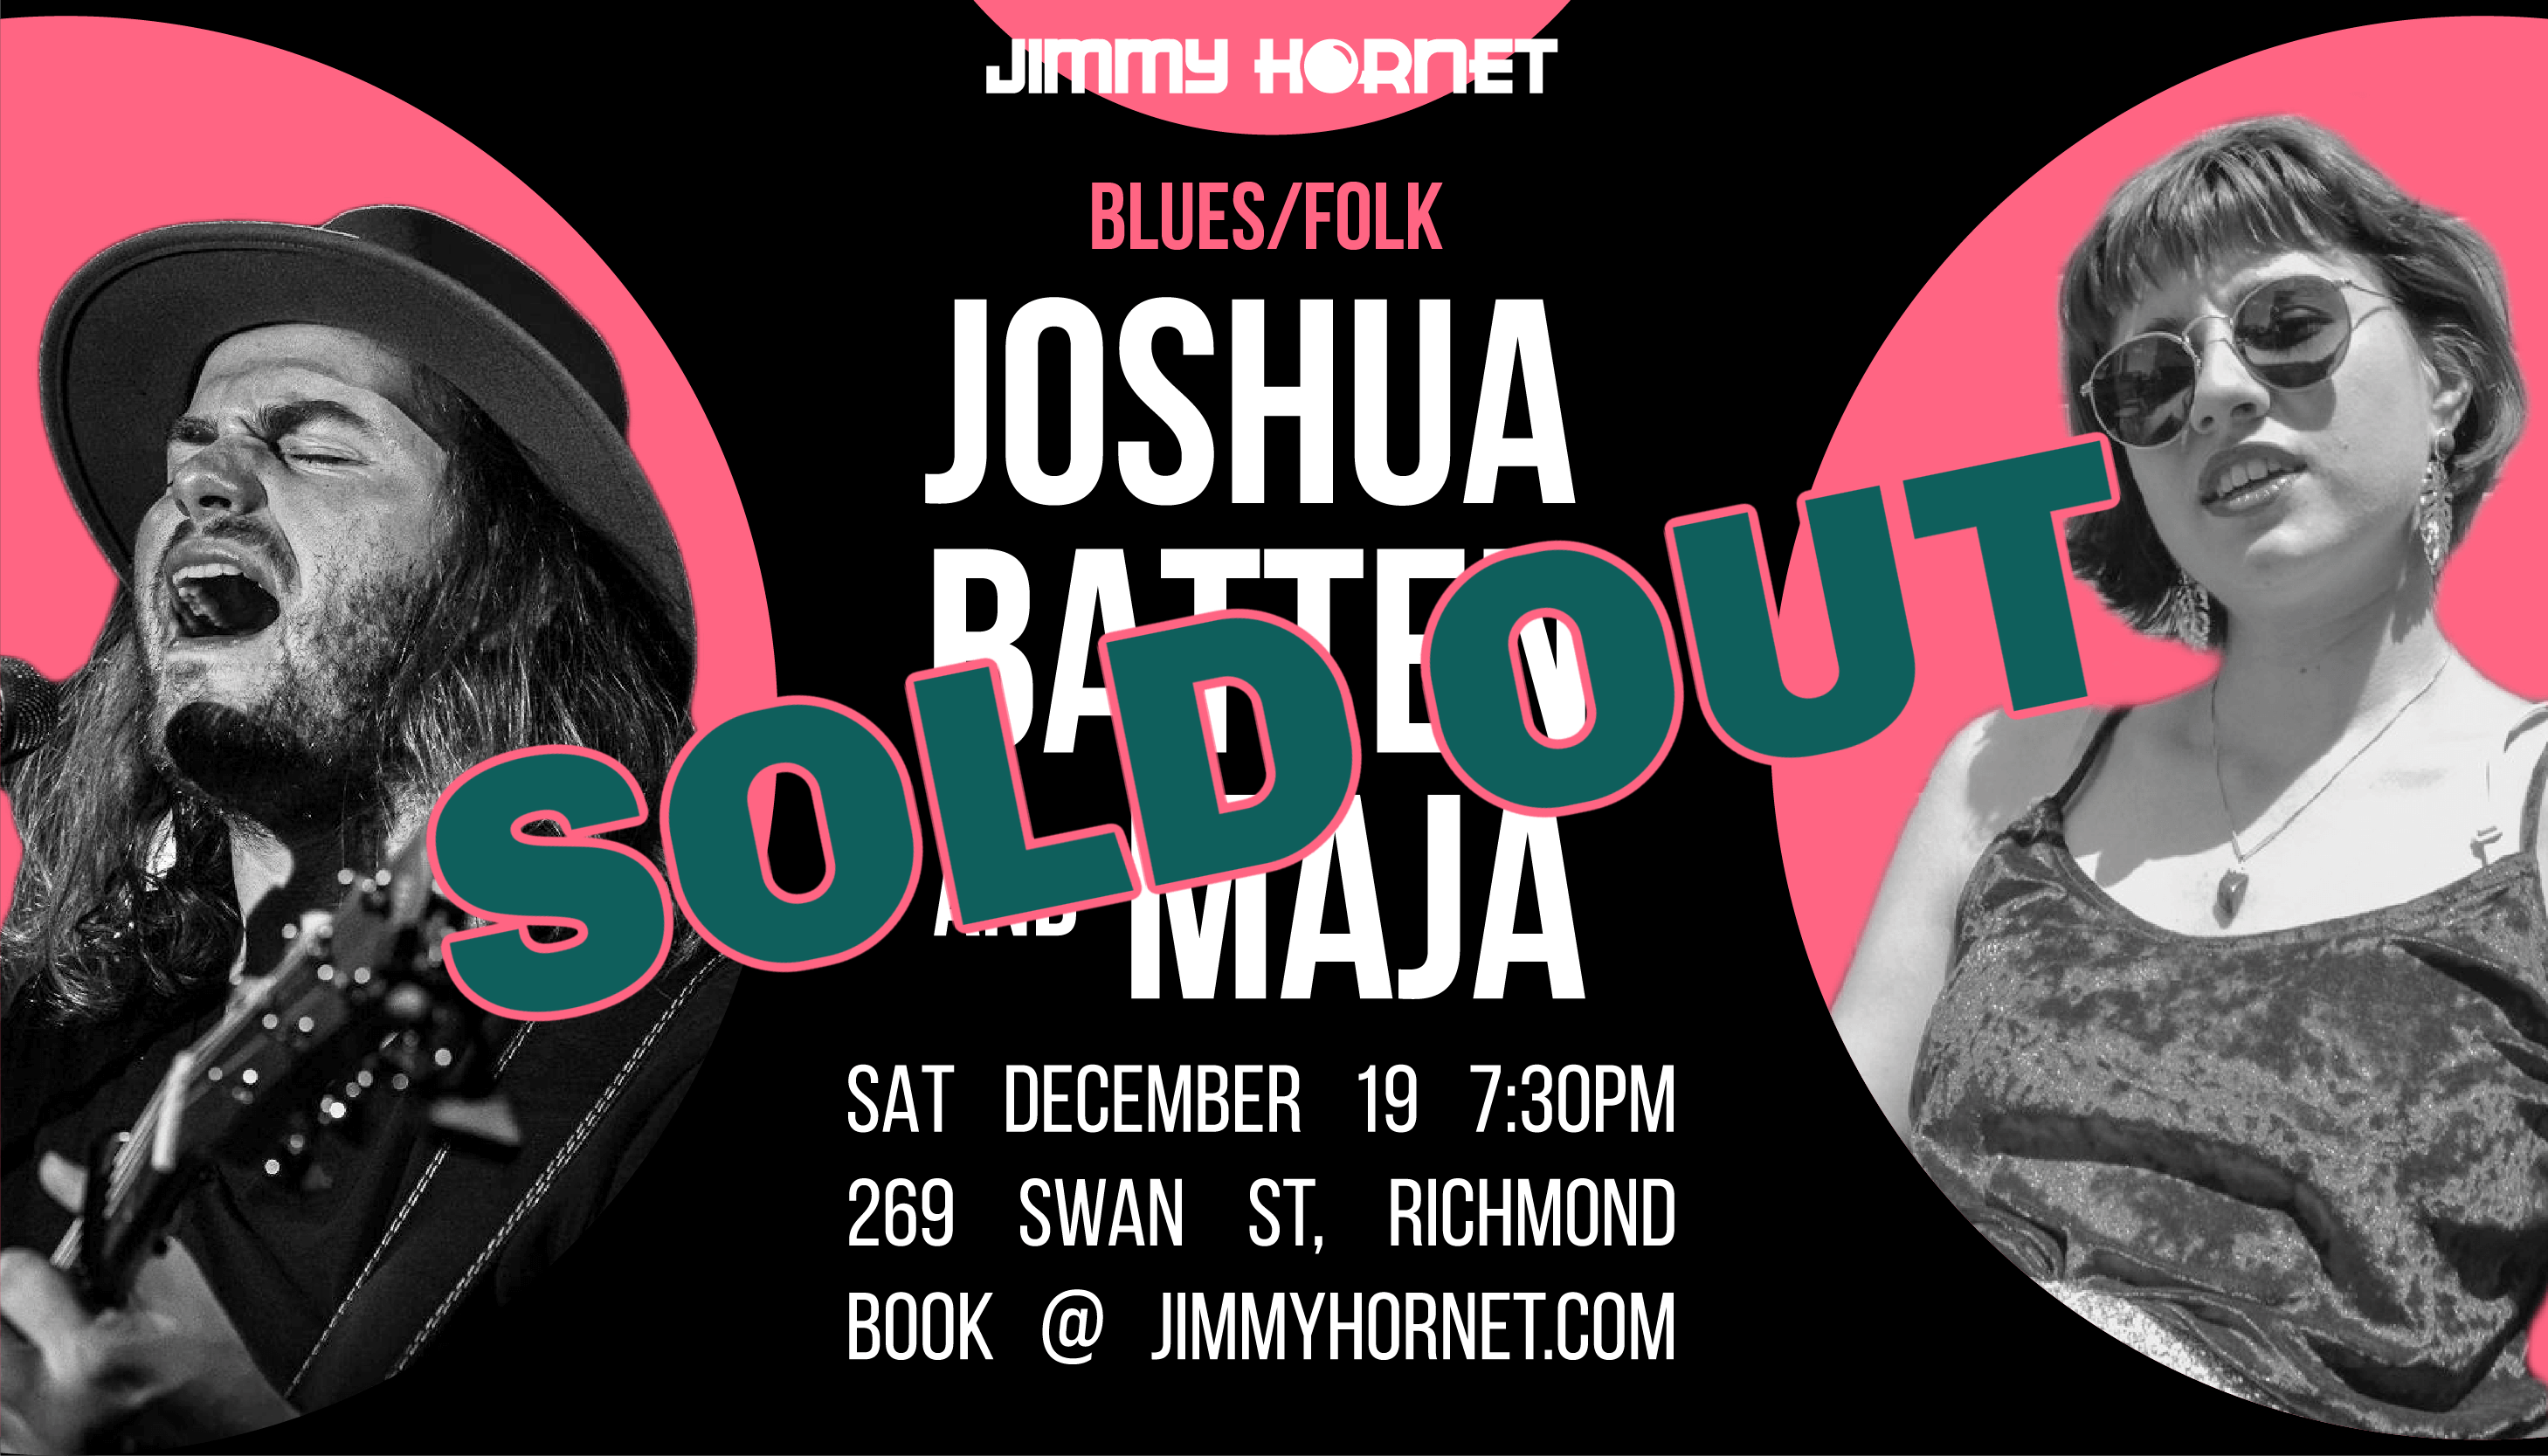 Sold Out Sat 19 Dec